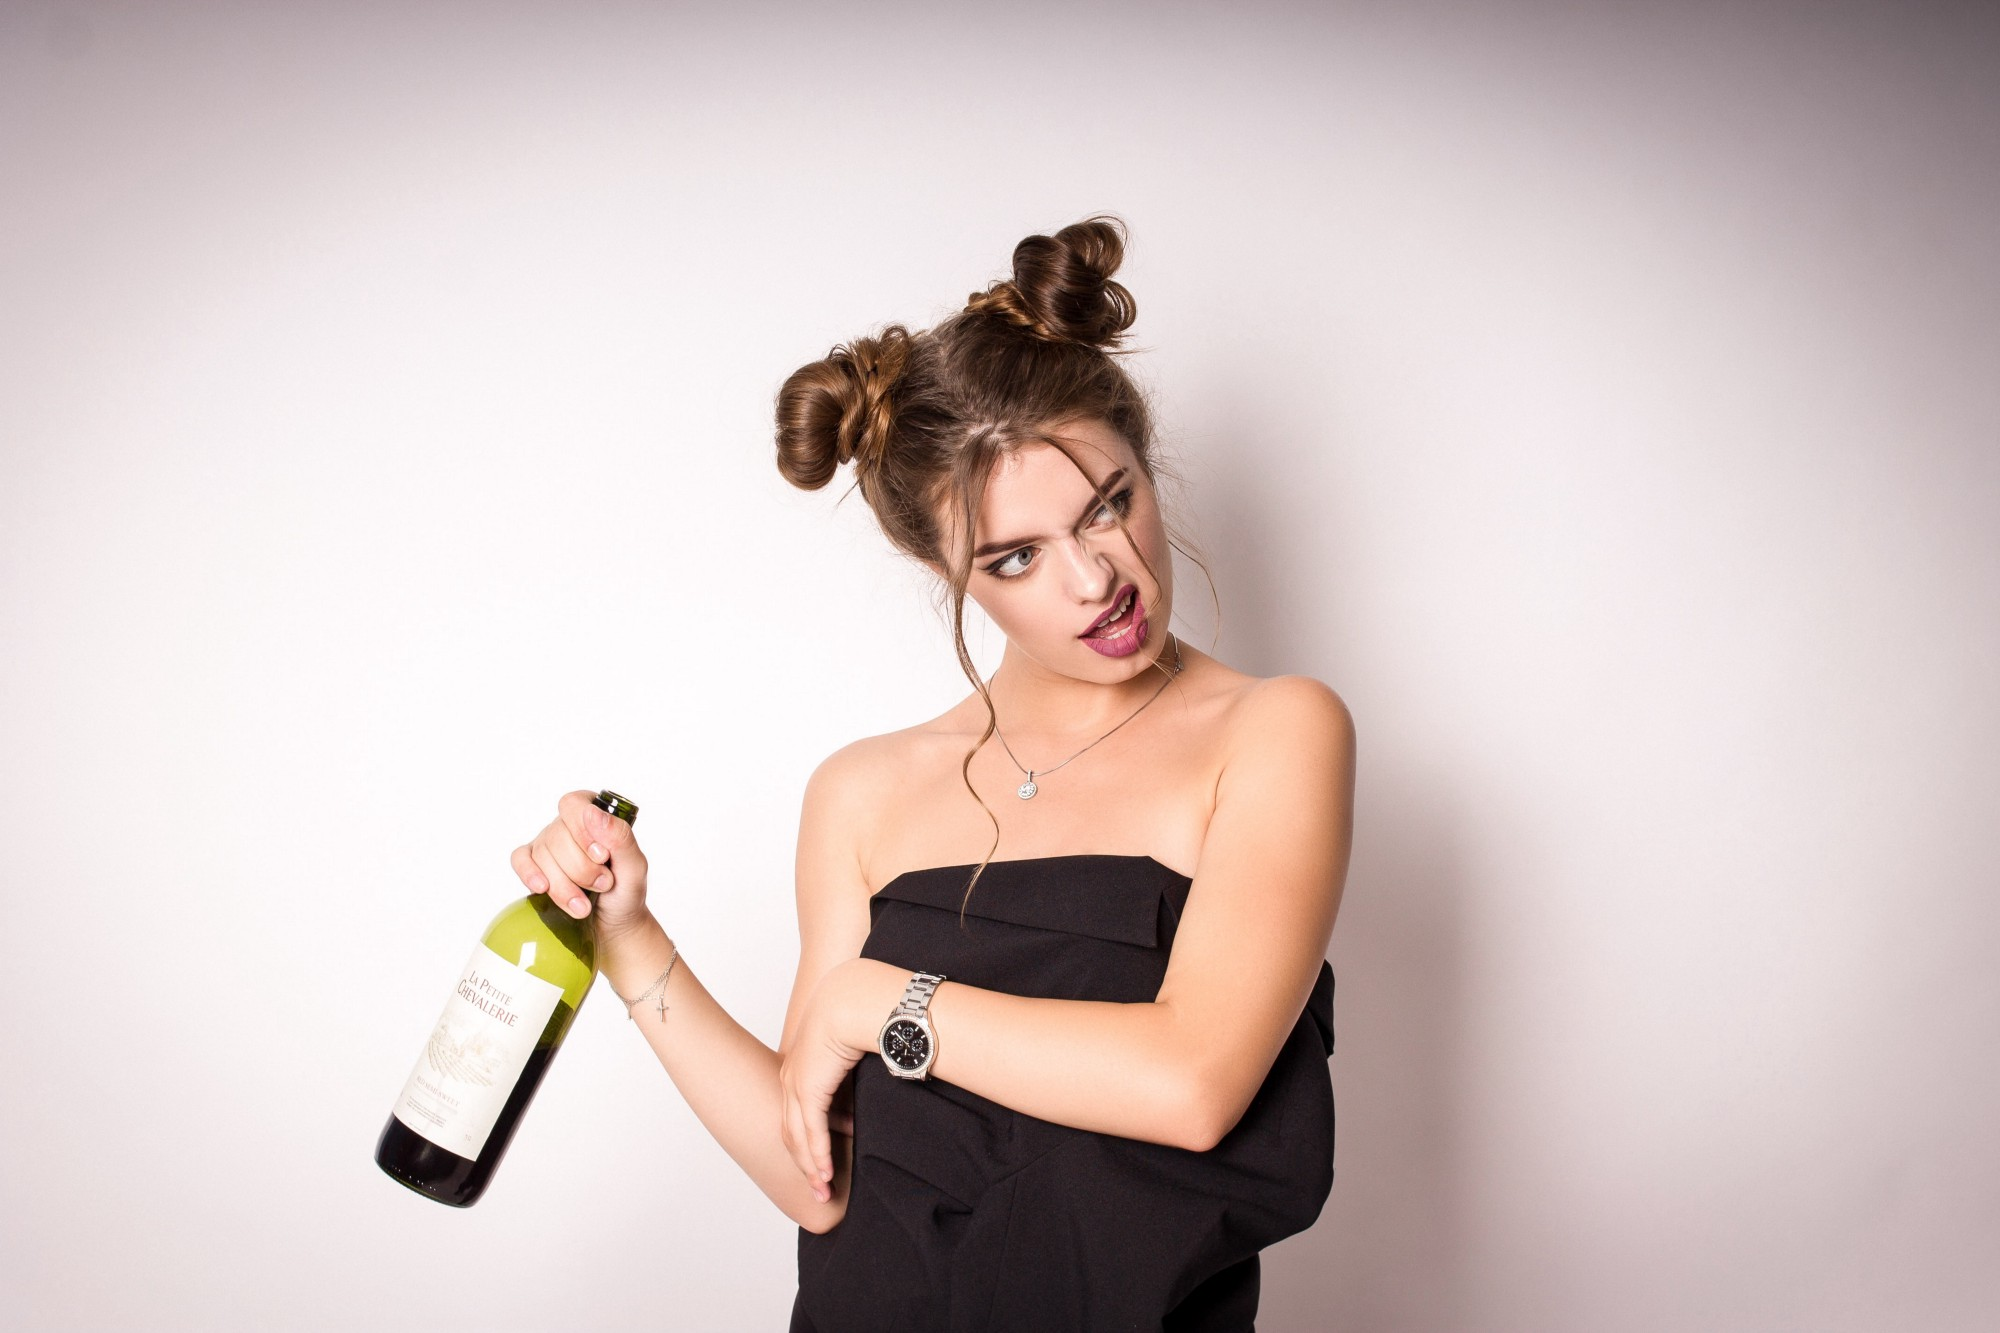 Female with a bottle of wine